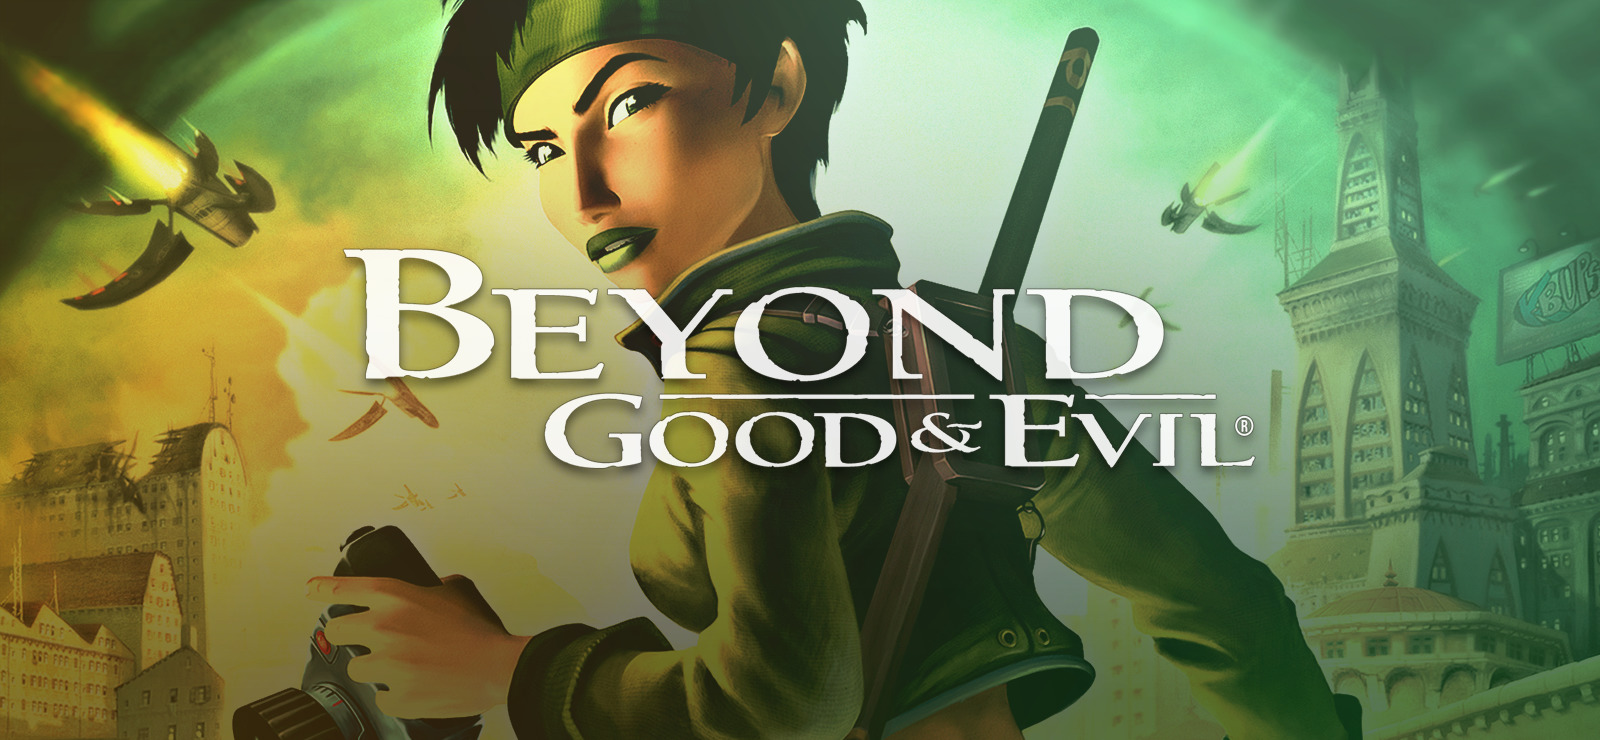 Beyond Good and Evil on video game podcast